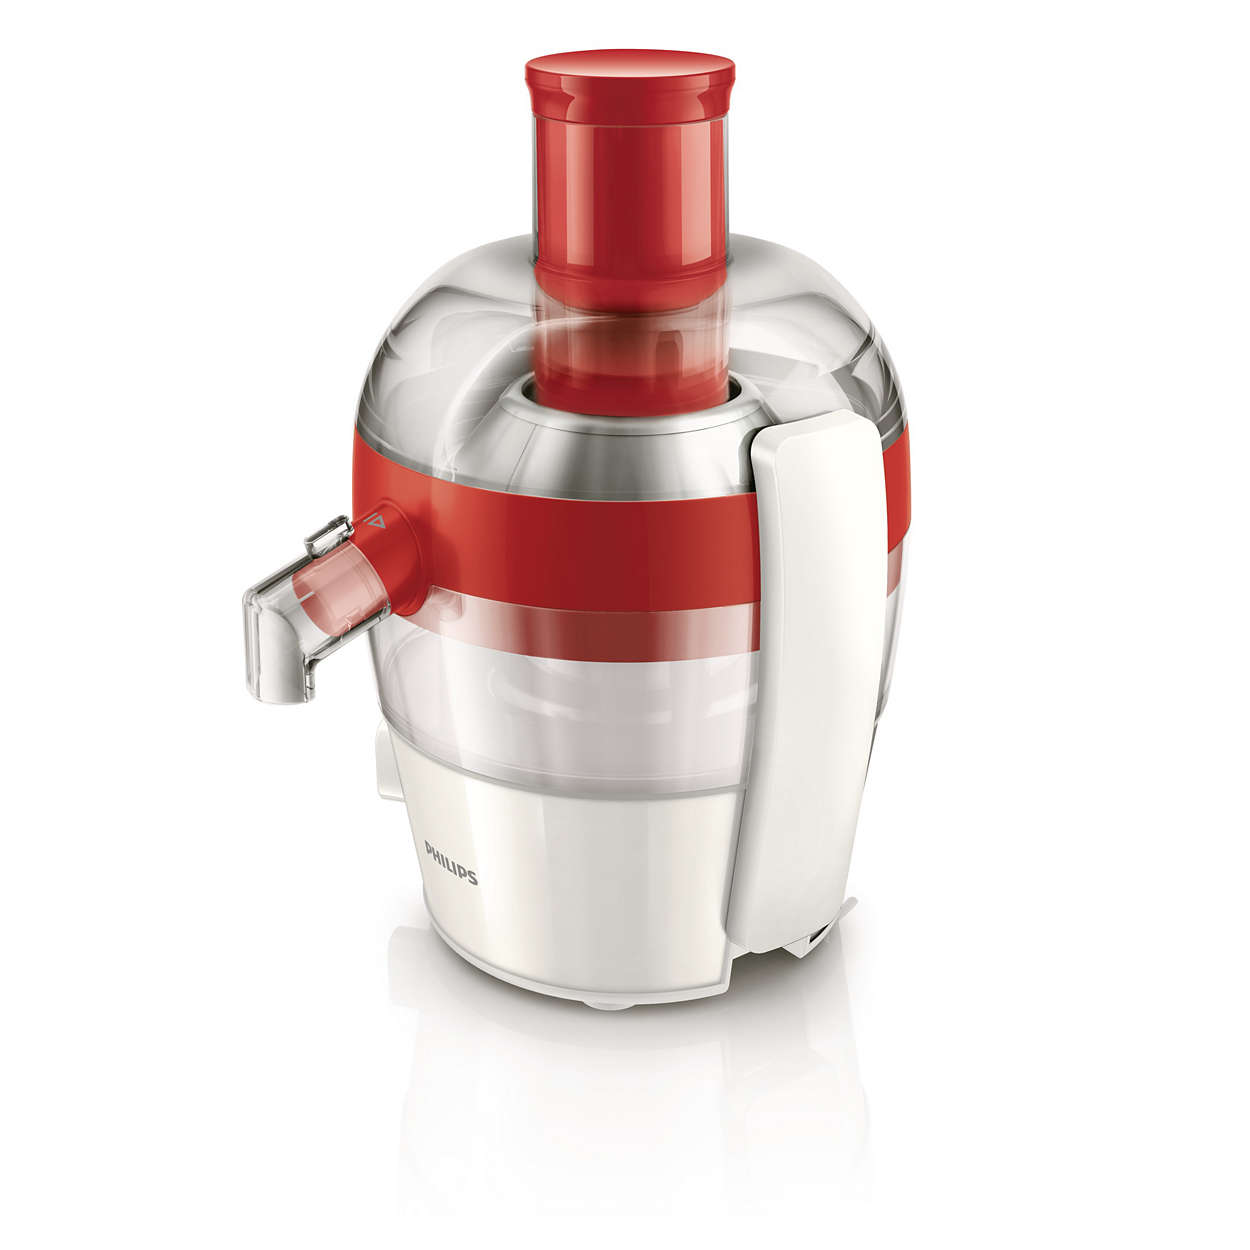 Buy Philips Juicer White Red 400w 1 5l Hr1832 45 Online Shopping